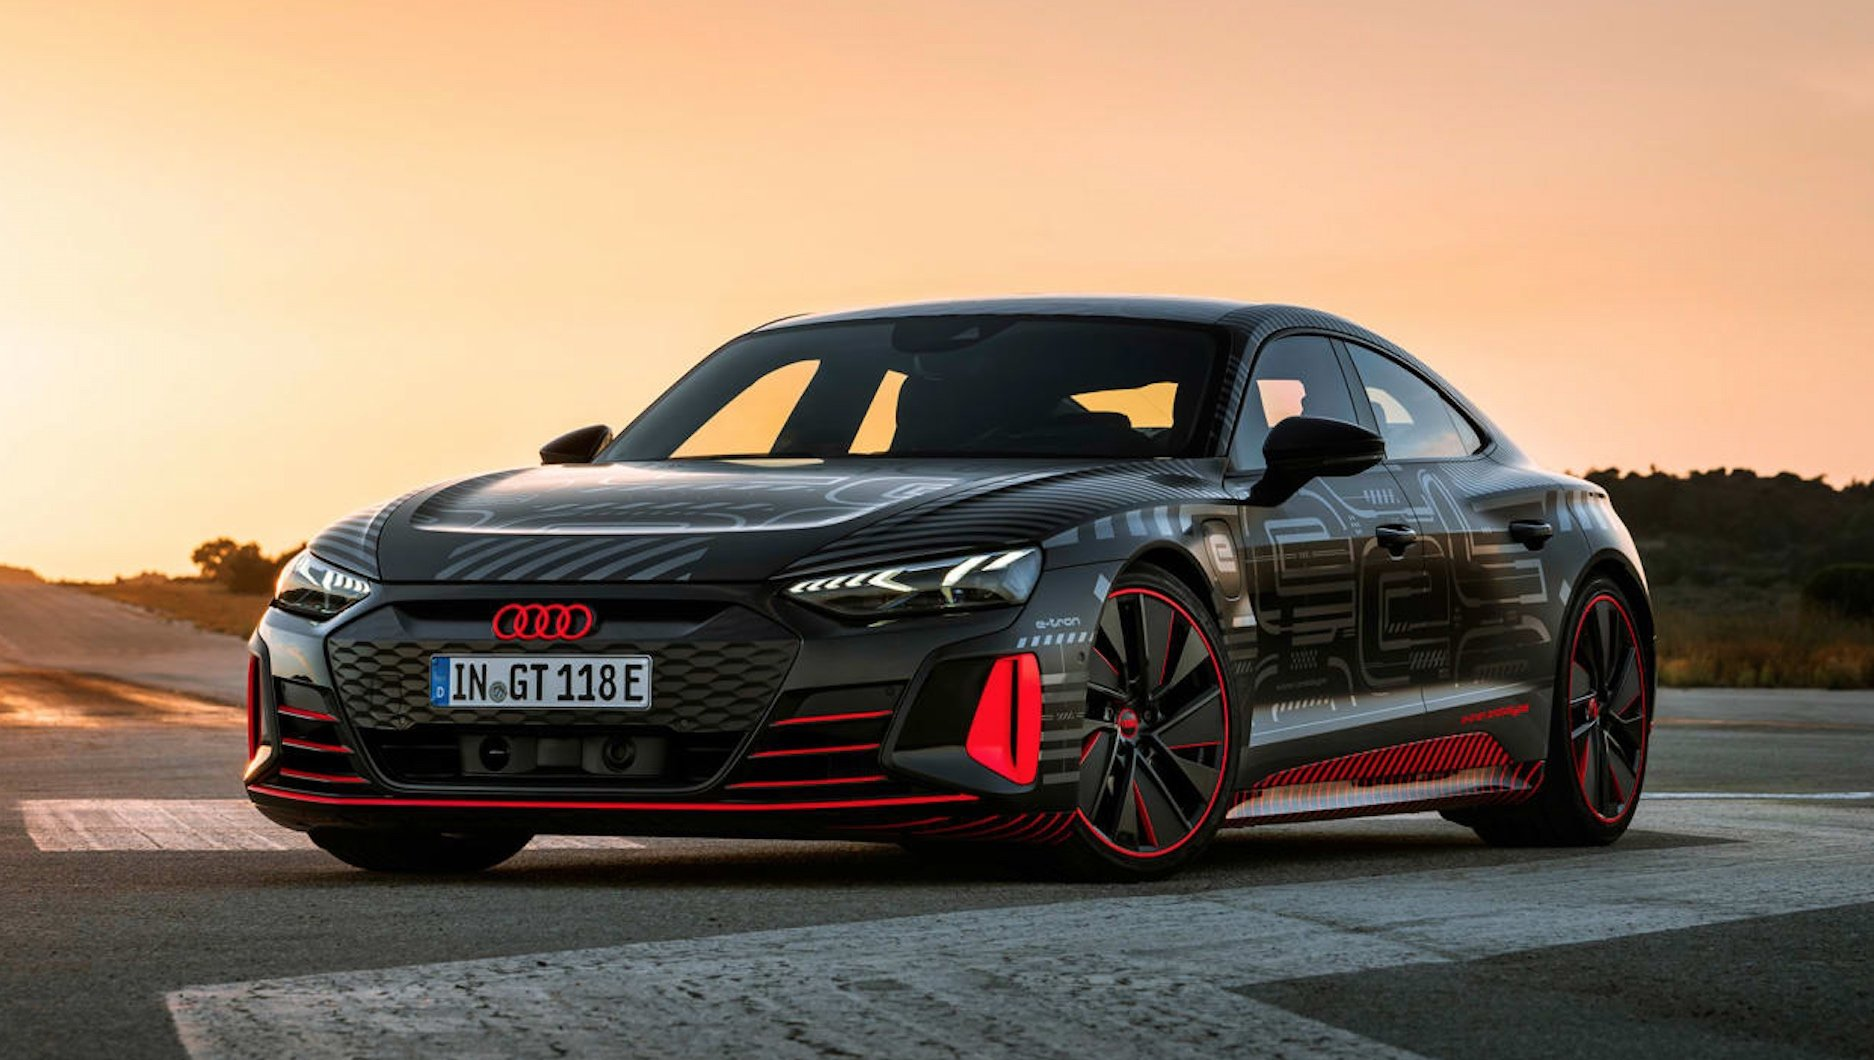 Audi RS E-tron GT details, prices and specs - Automotive Daily